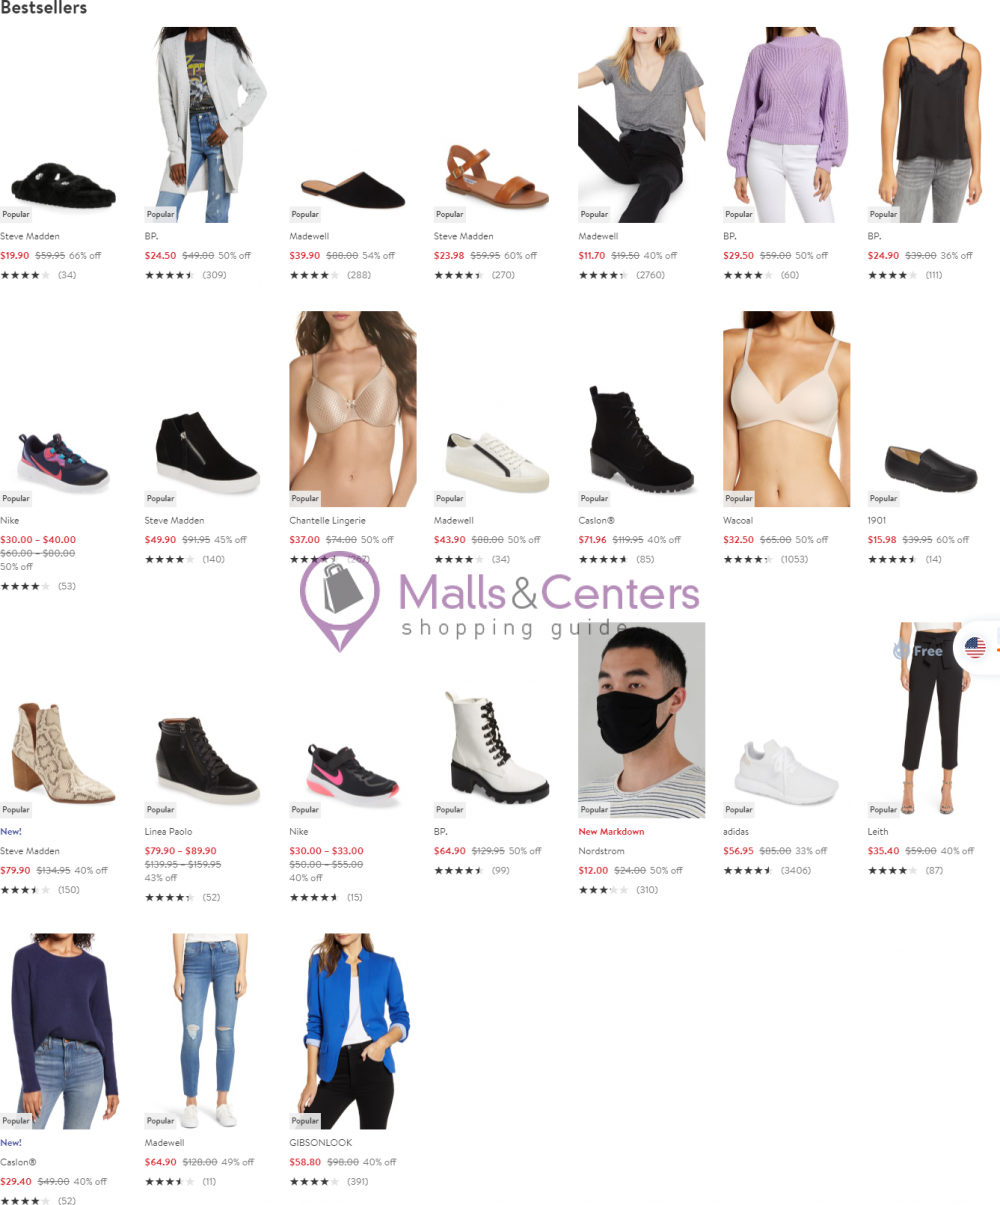 weekly ads Nordstrom - page 1 - mallscenters.com